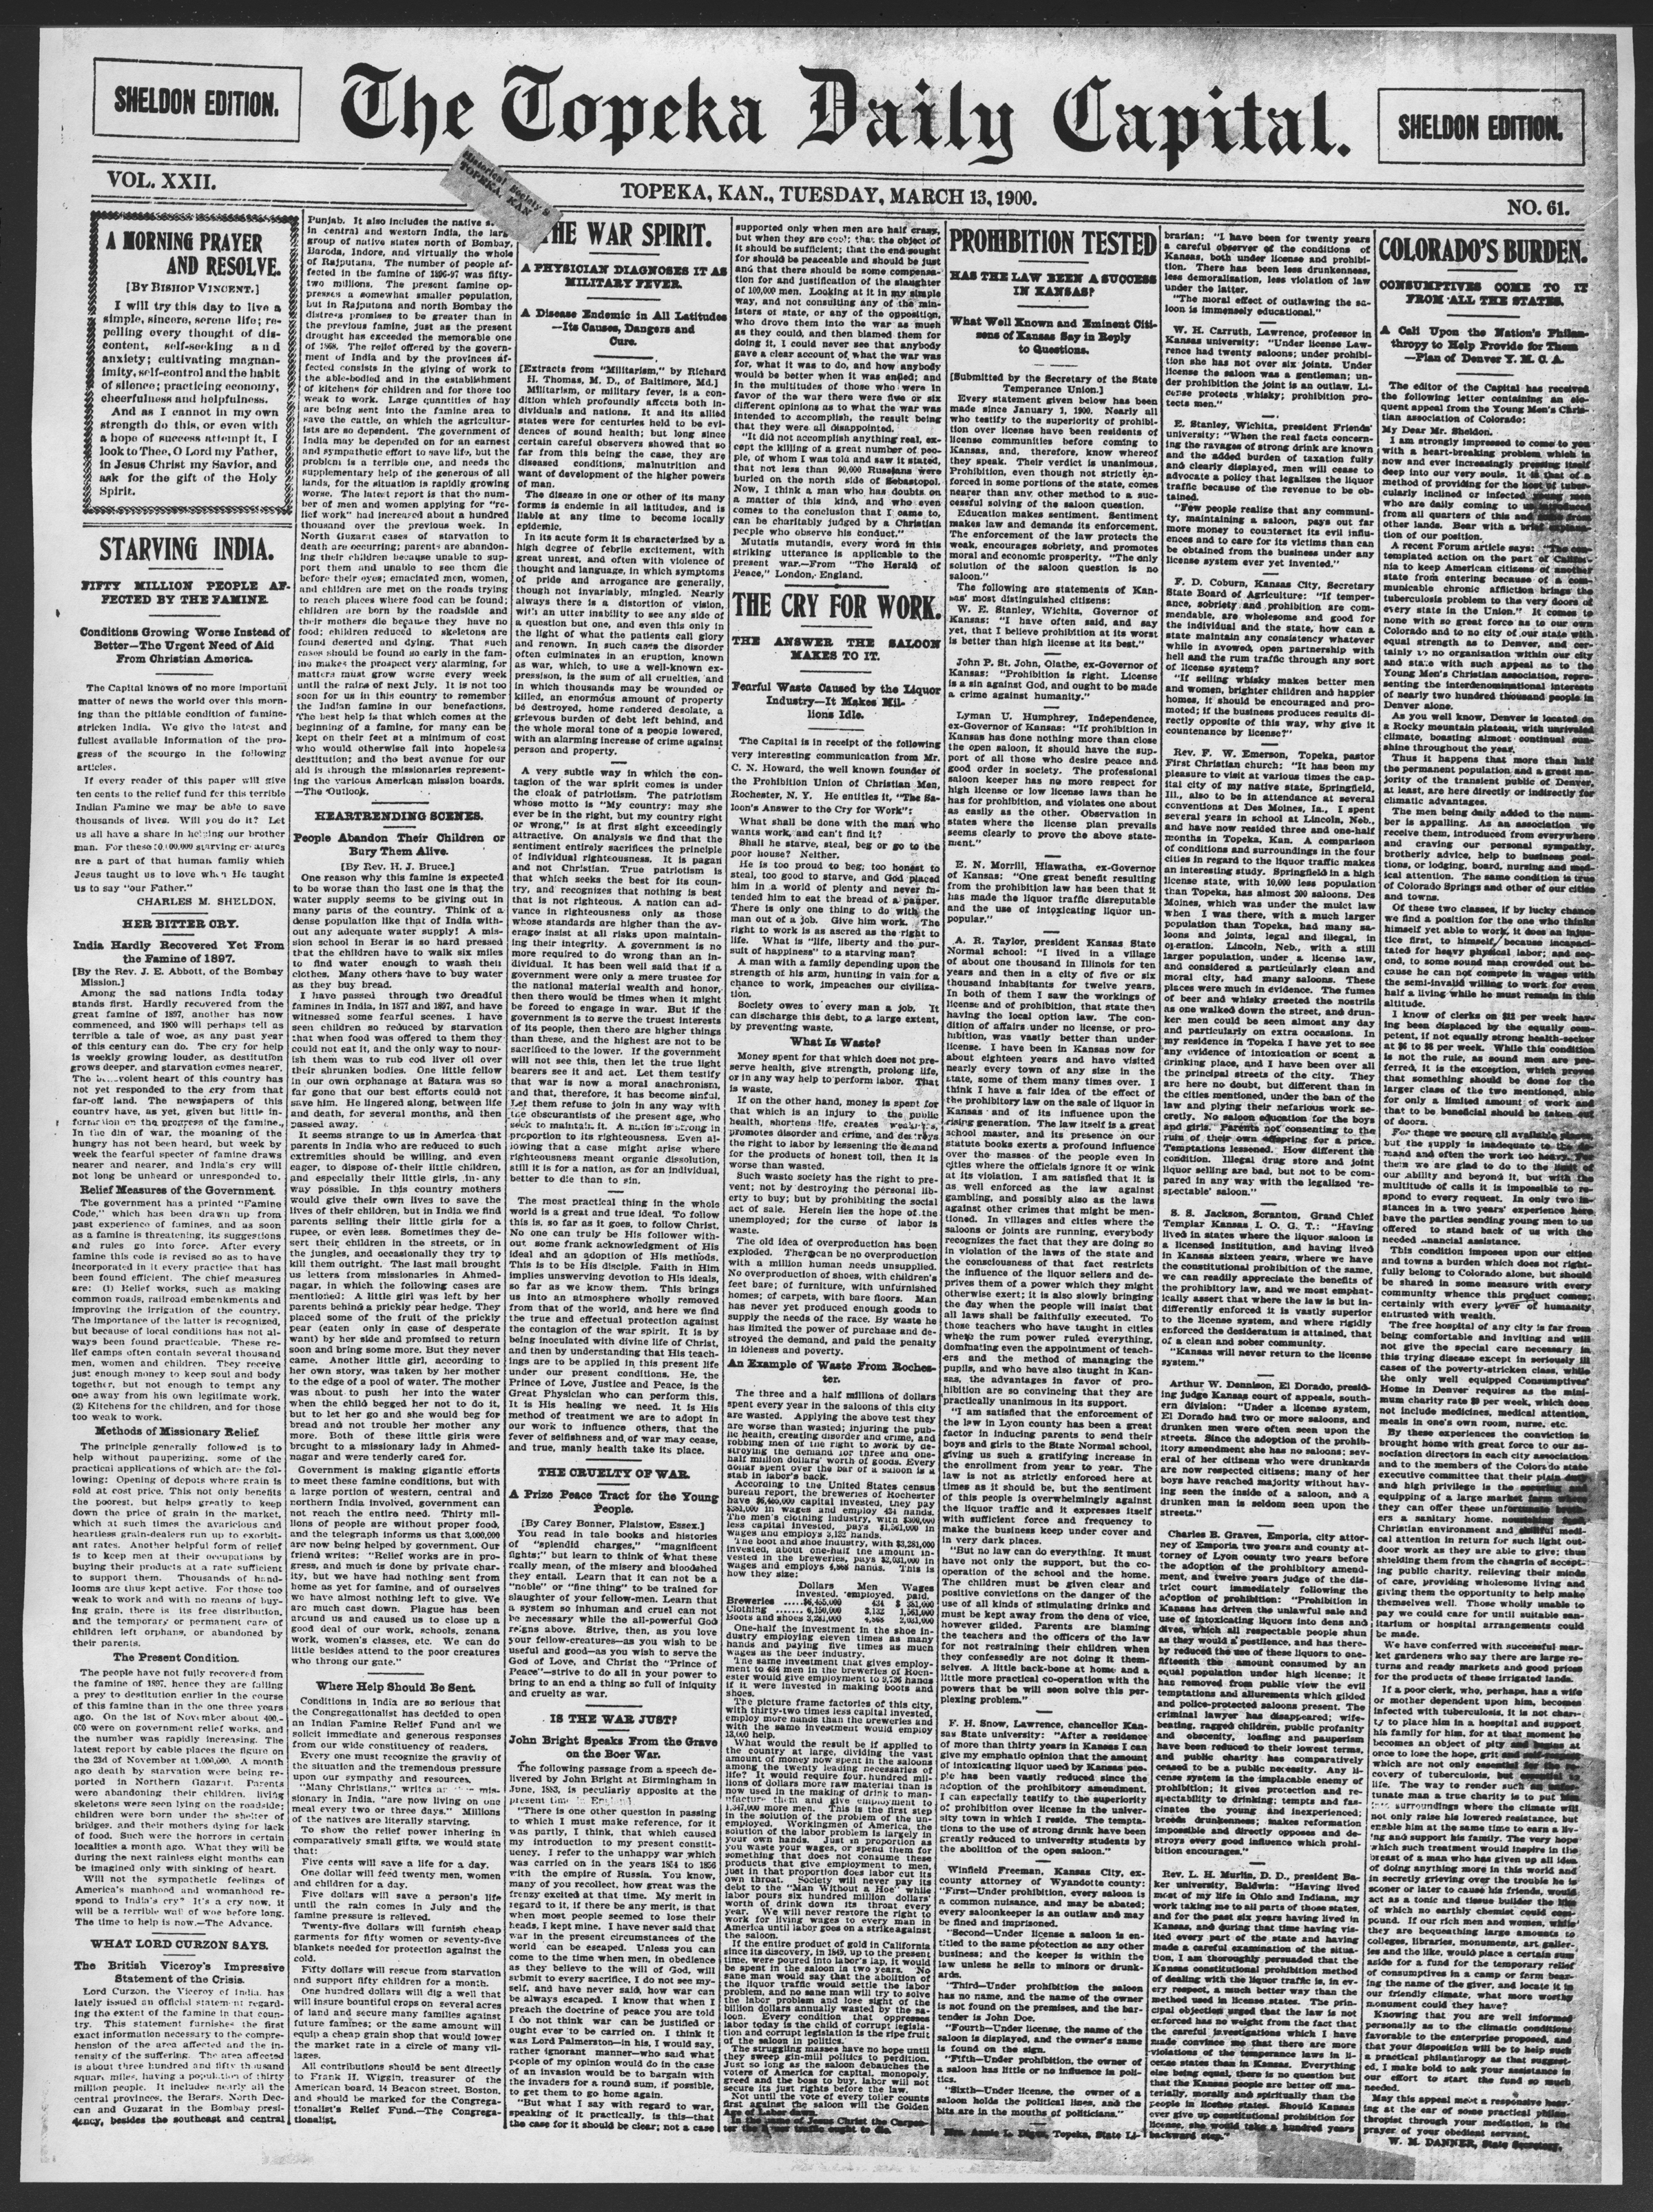 The Topeka daily capital. Sheldon edition - 1, Tuesday, March 13, 1900